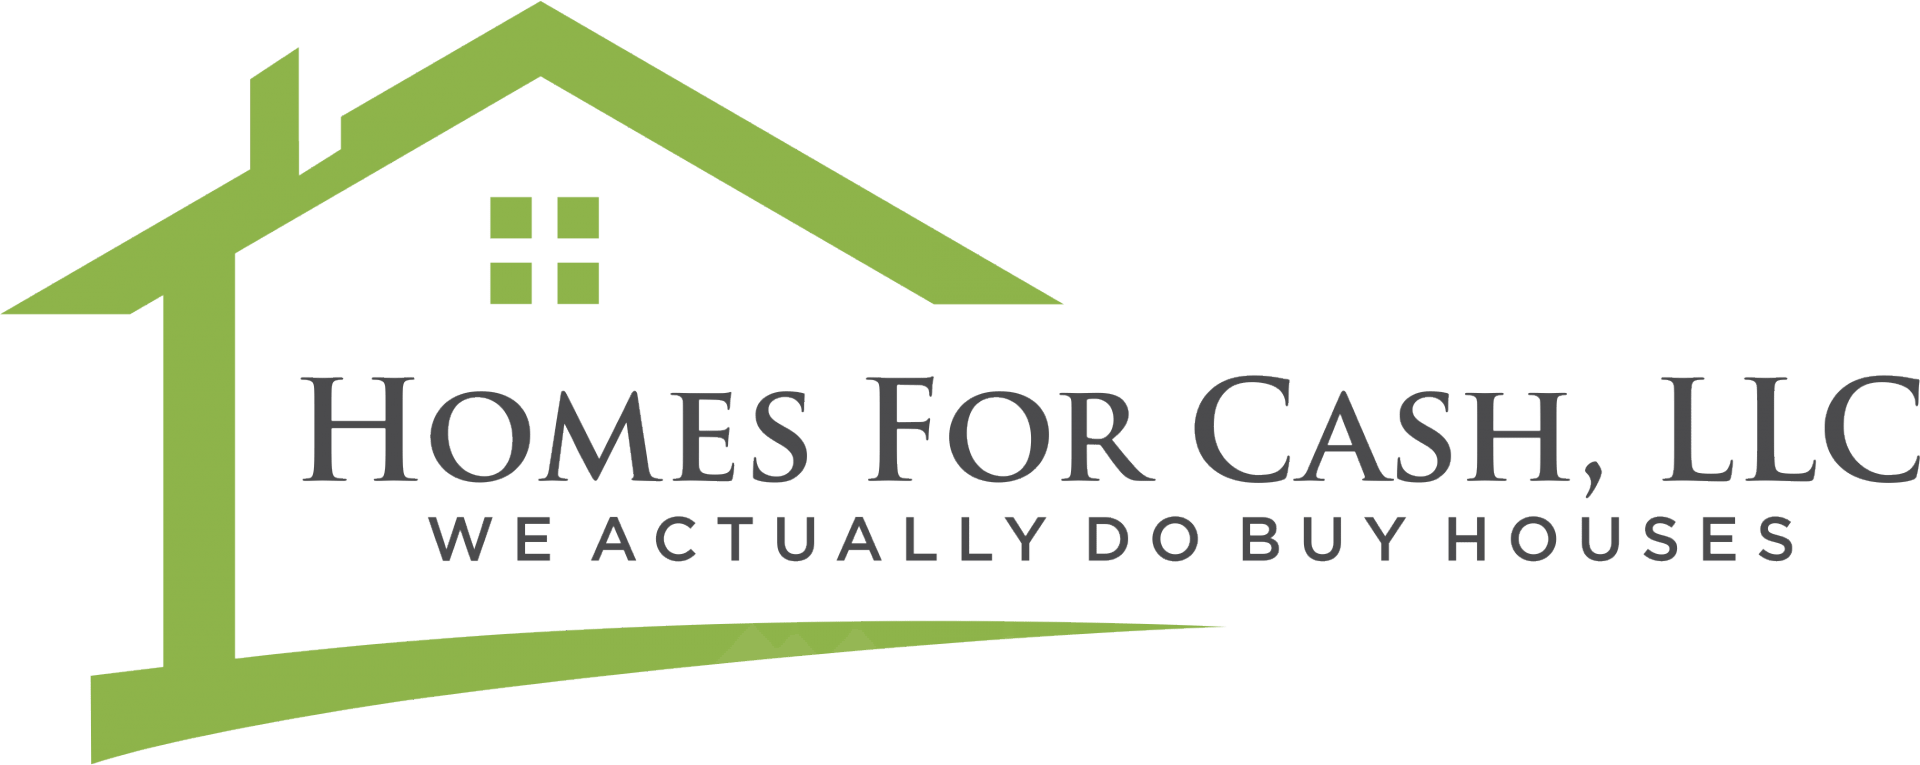 Homes For Cash, LLC logo